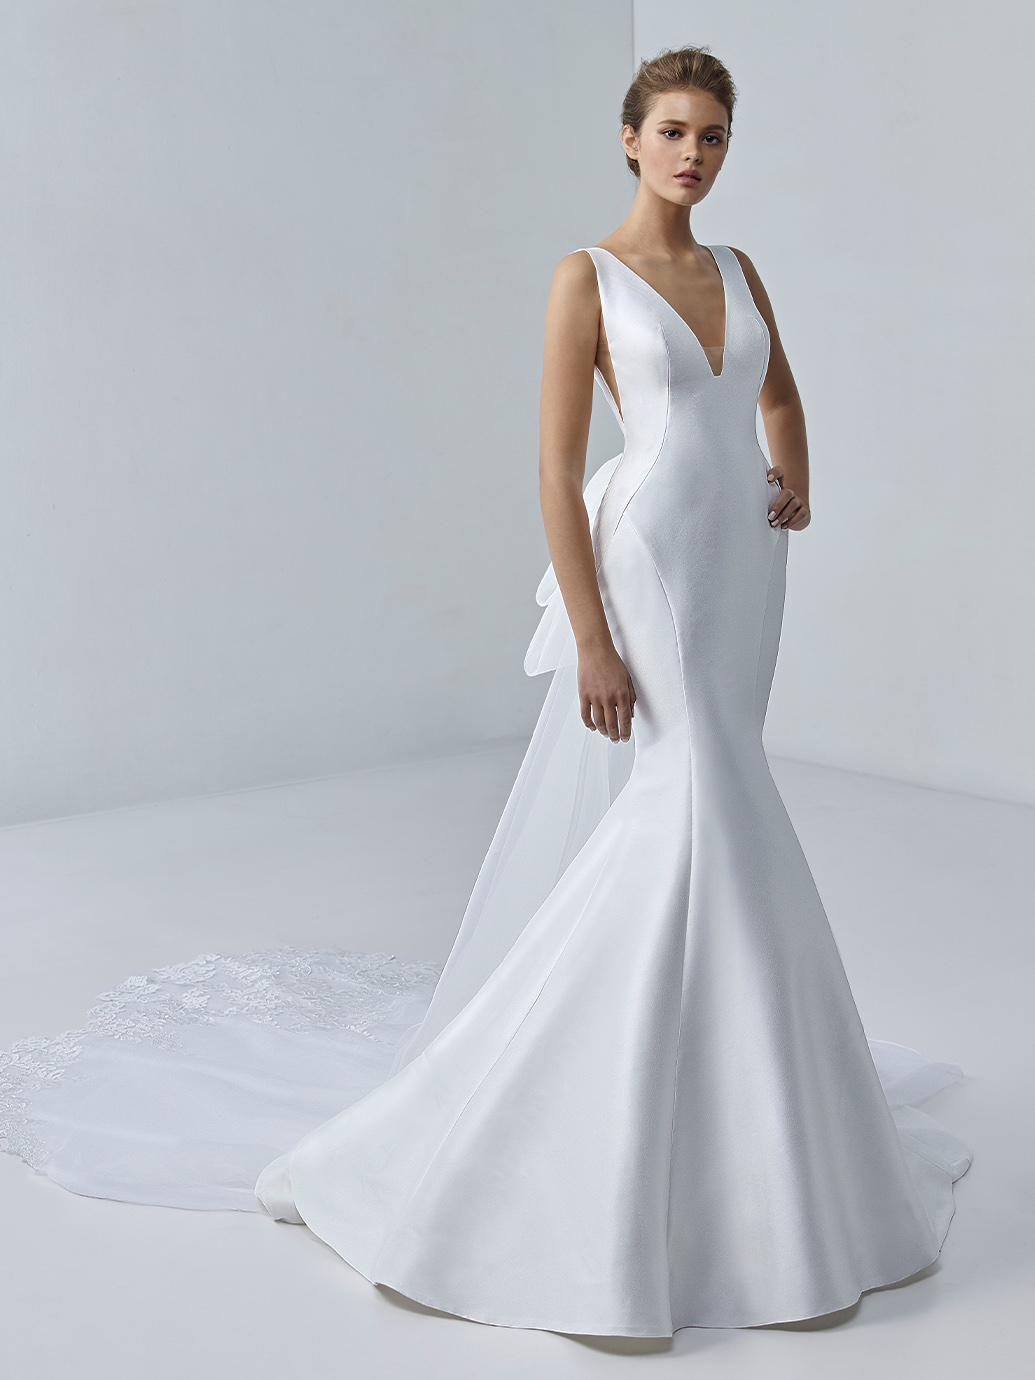 étoile-by-enzoani-2021-Dress-Finder-Cygneau